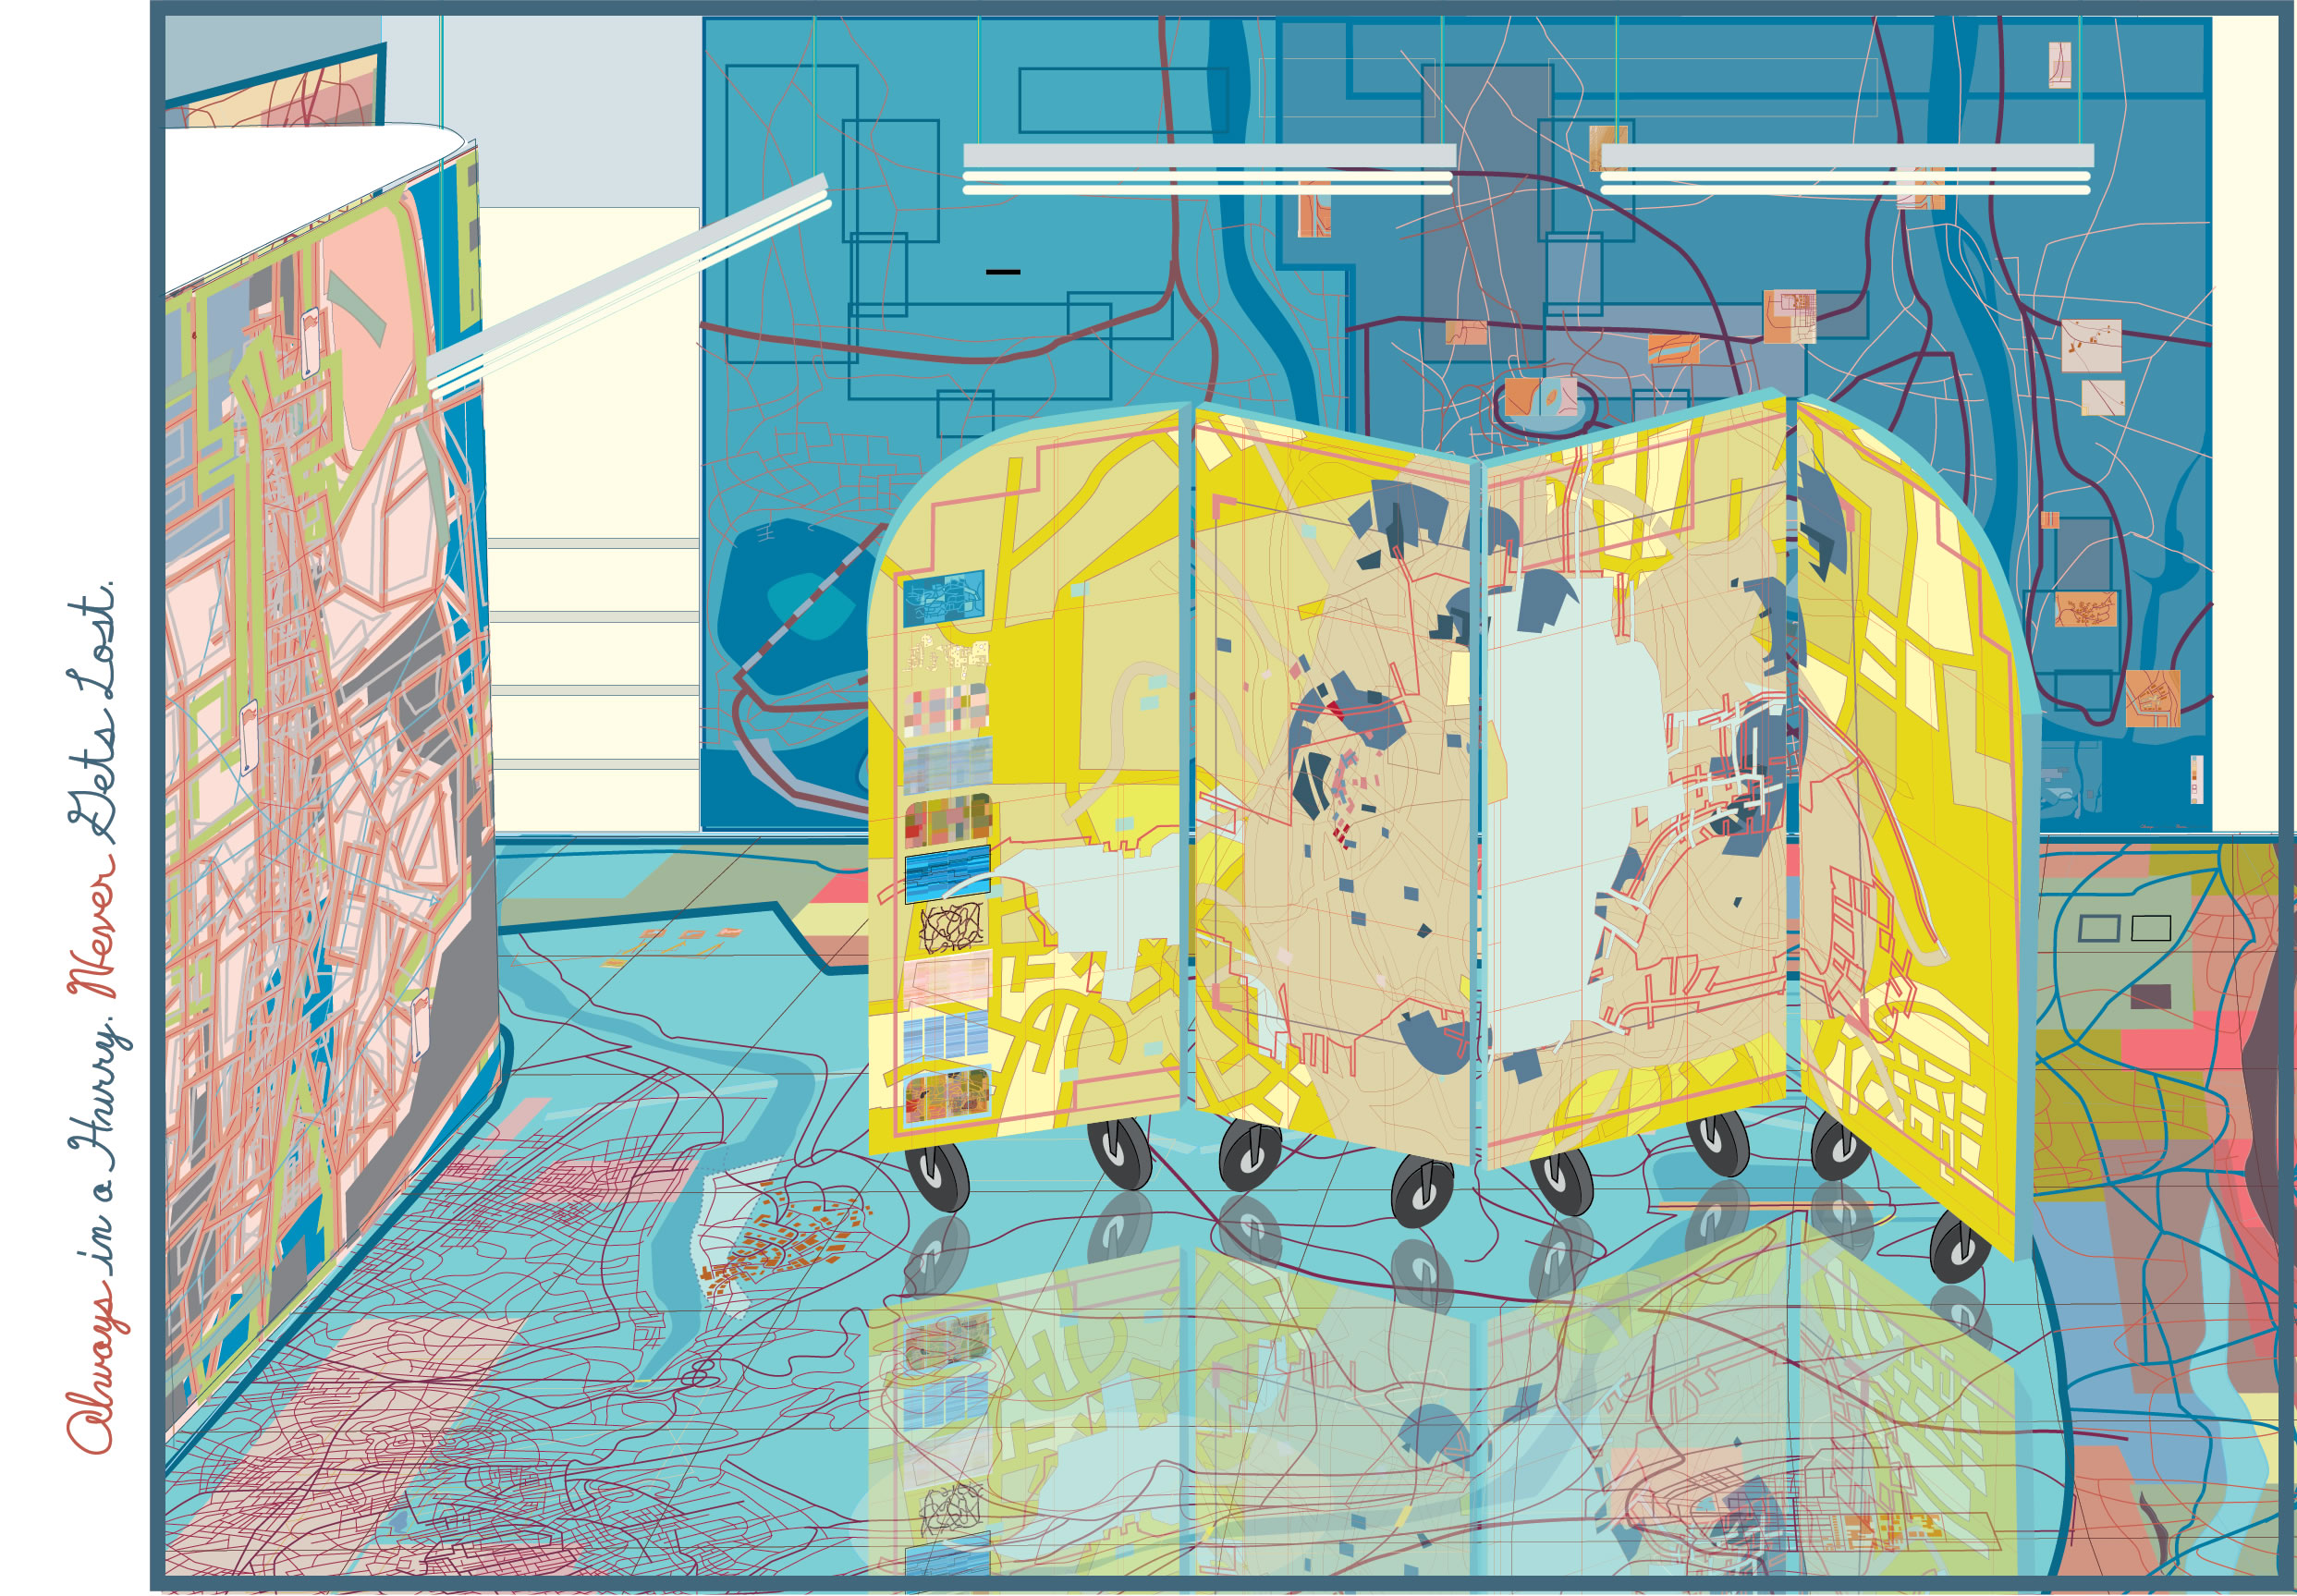 Illustration using images used to create show (at Southern Exposure). Cleaner looking than in real life, below with the blue side of the folding screen visible.